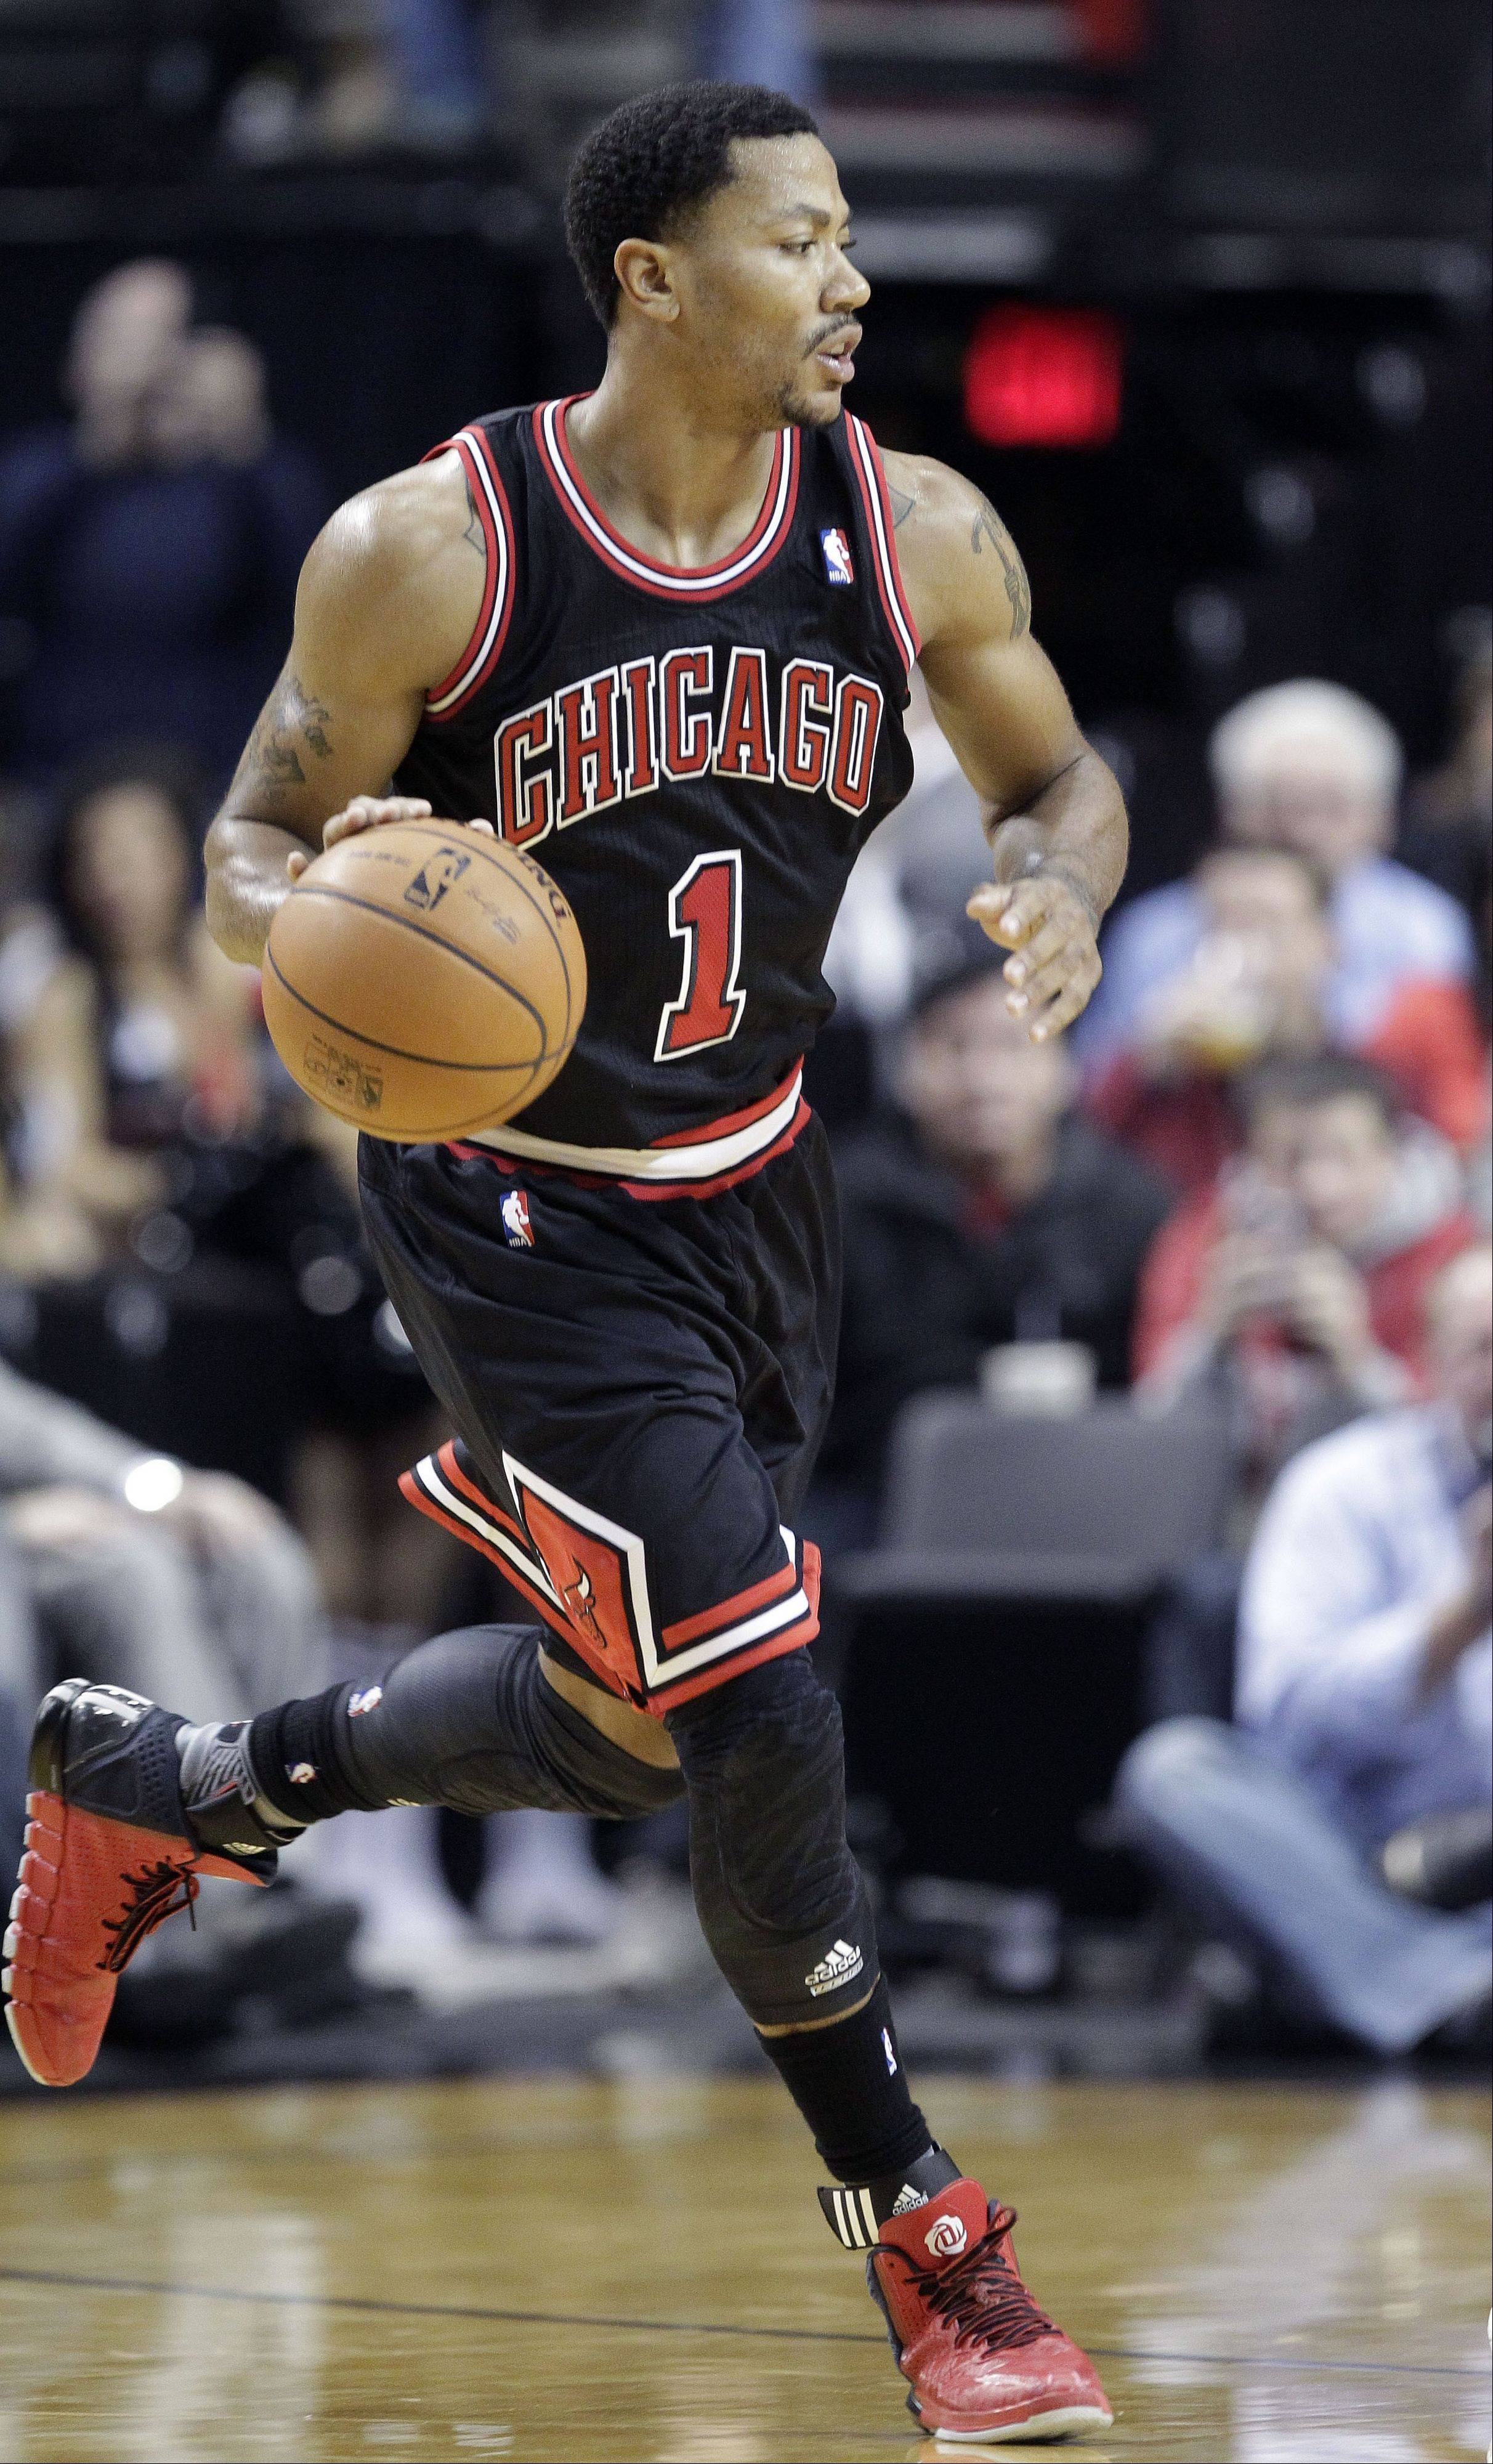 Derrick Rose's career showed such promise just a few short years ago, but injuries continue to plague the one-time MVP and it's fair to wonder if his best days are behind him.